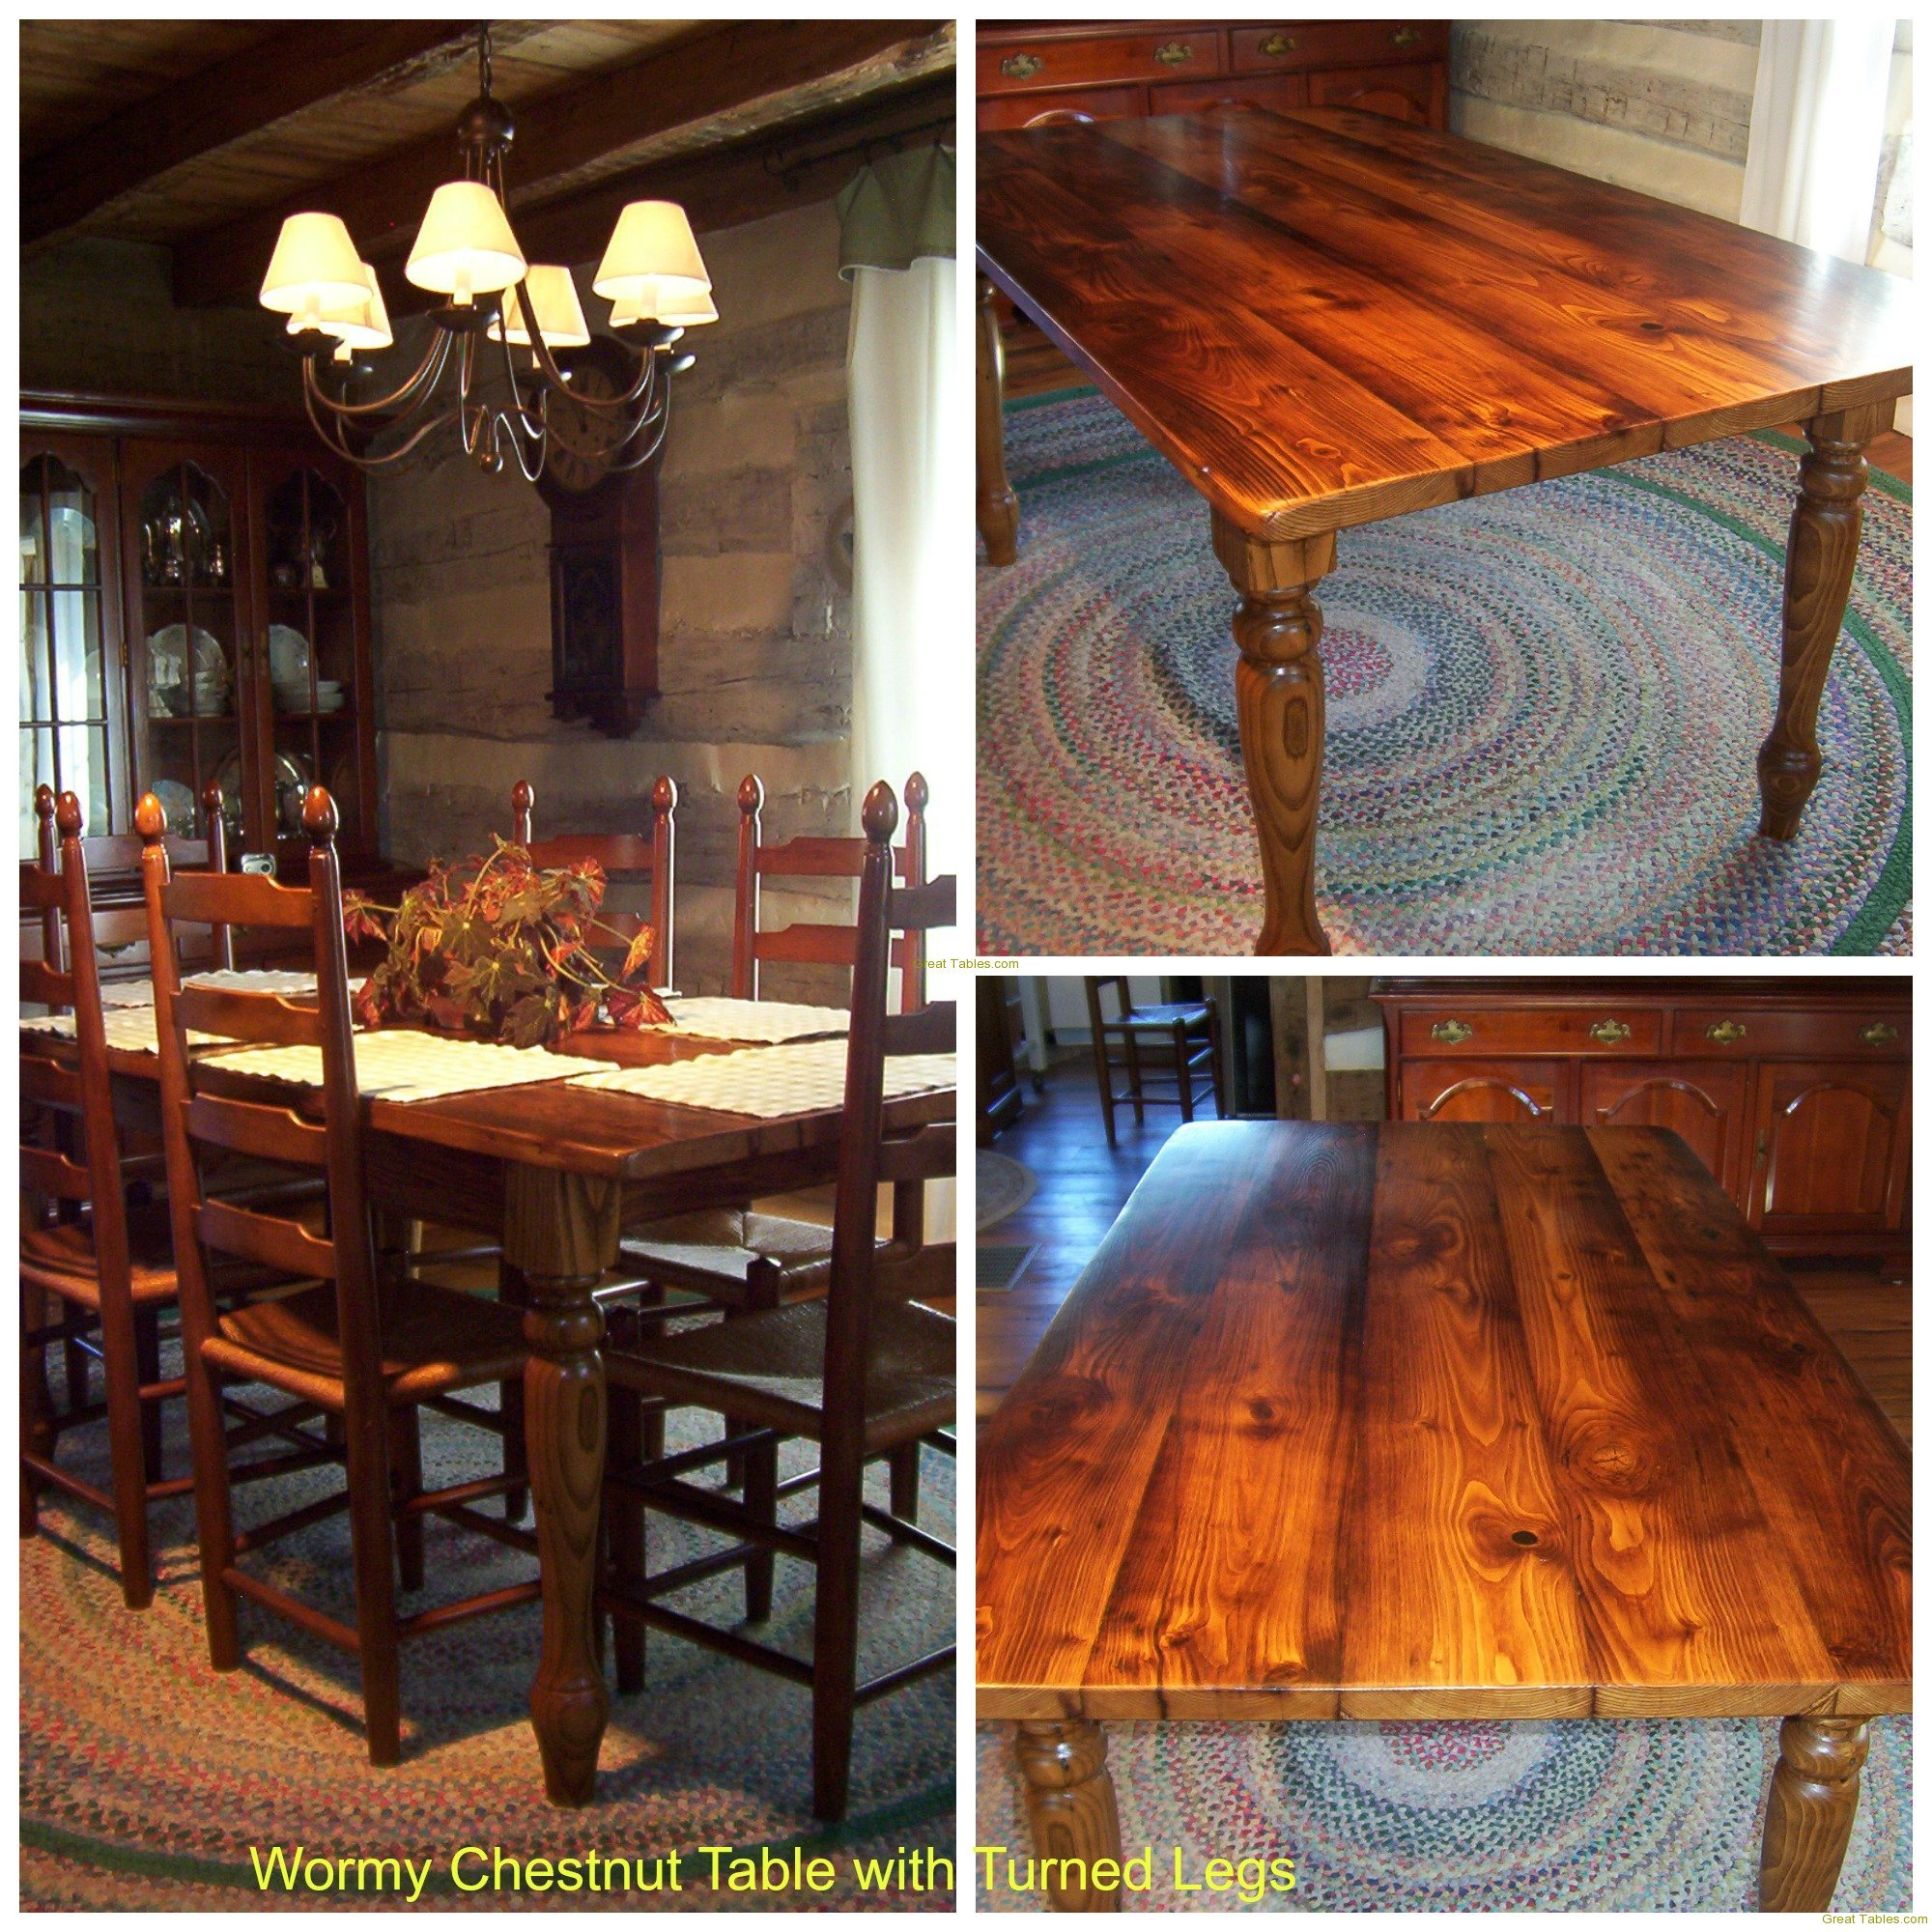 12. Chestnut Table with Turned Legs